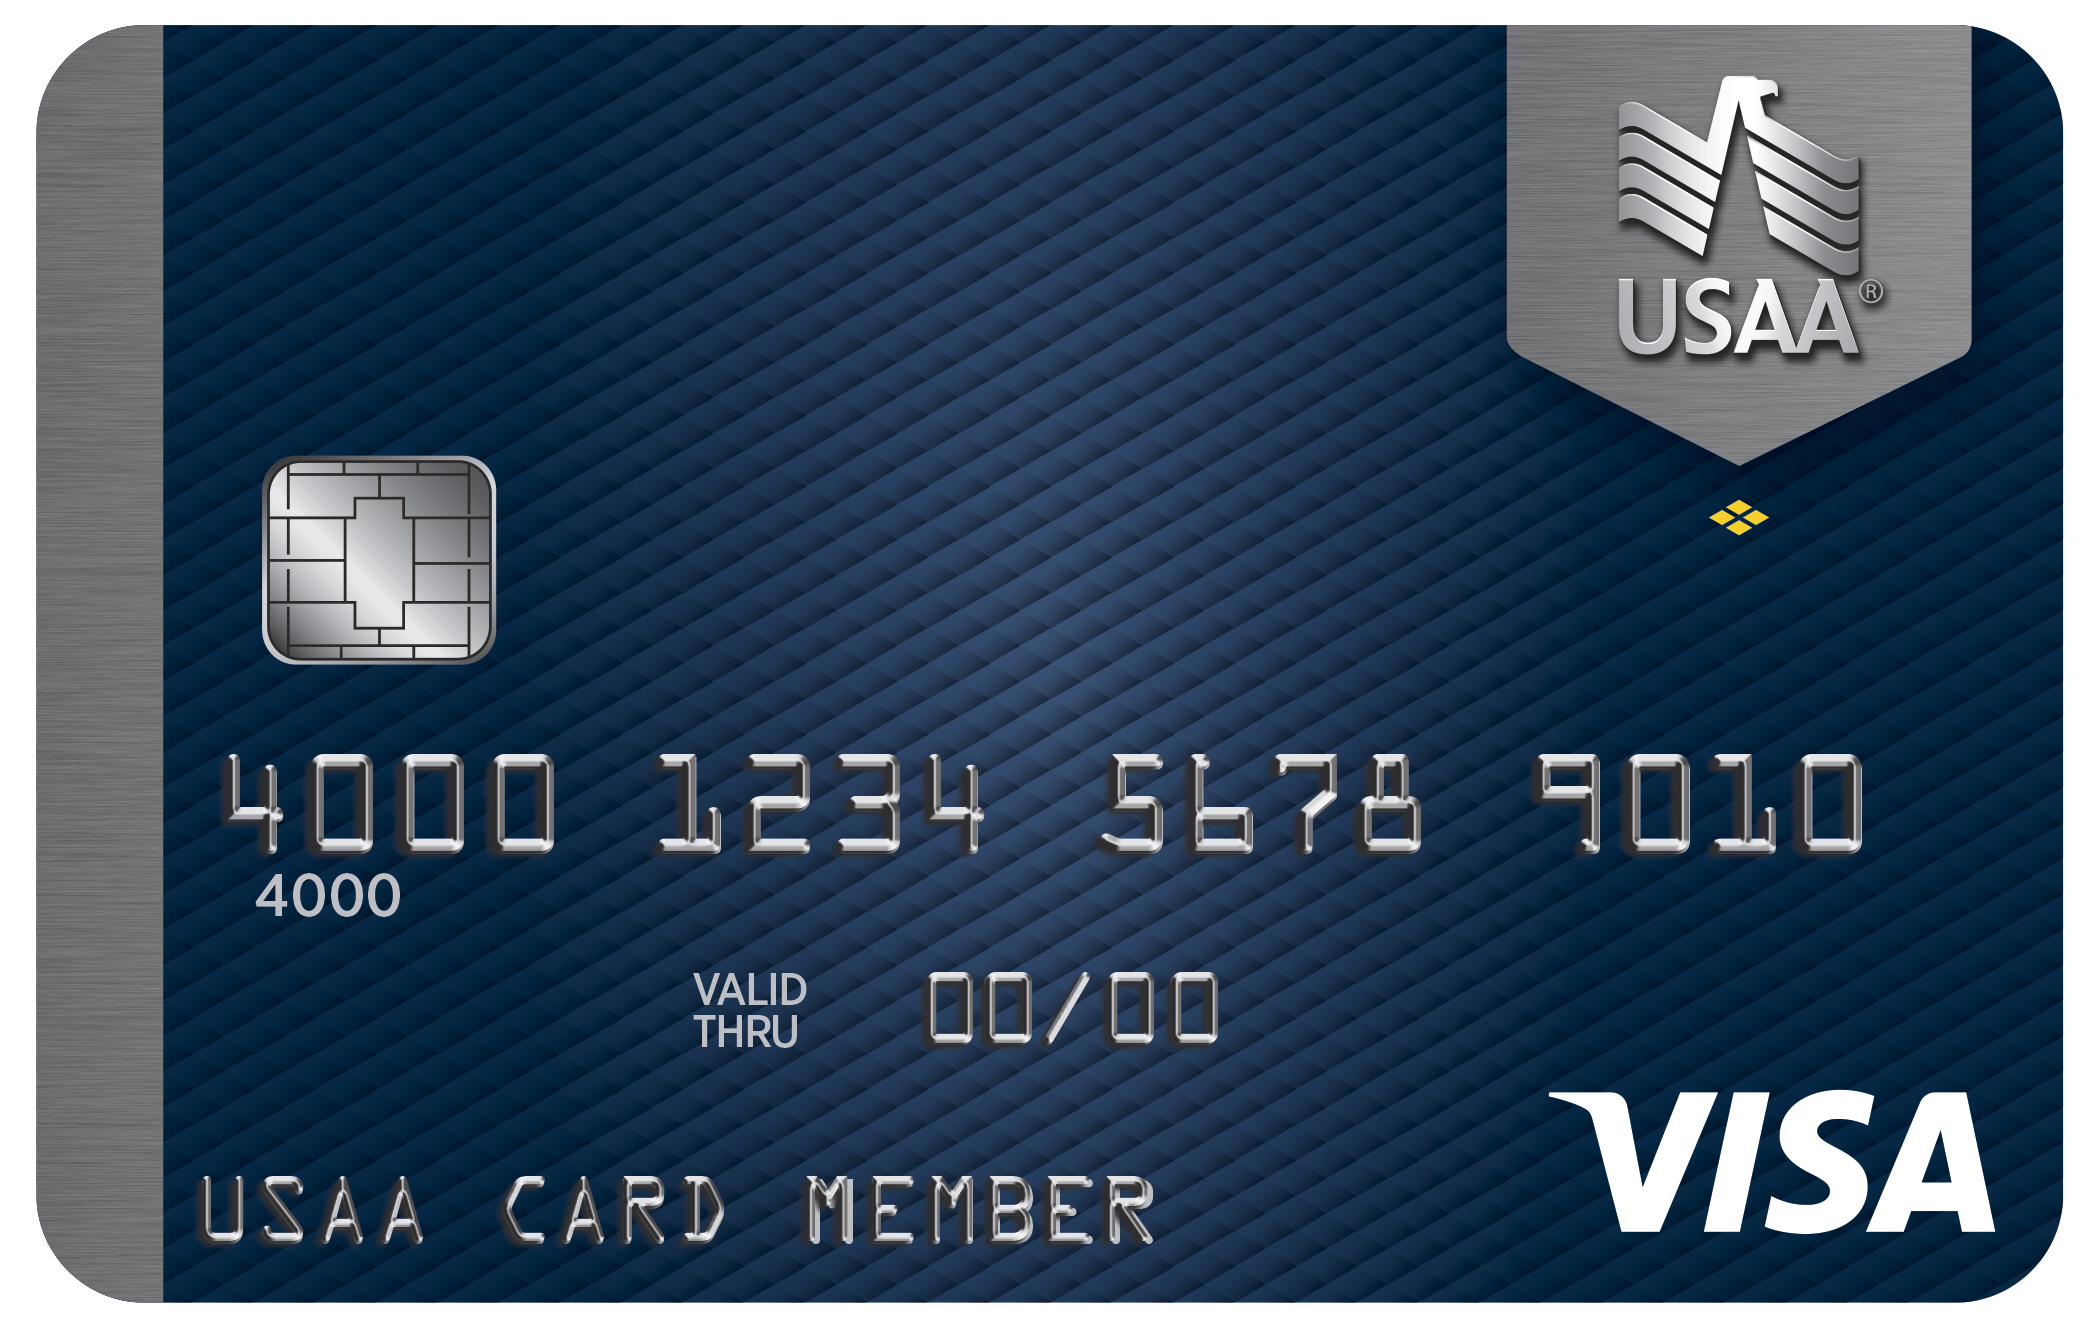 usaa secured card platinum visa card reviews credit karma - Visa Secured Credit Card